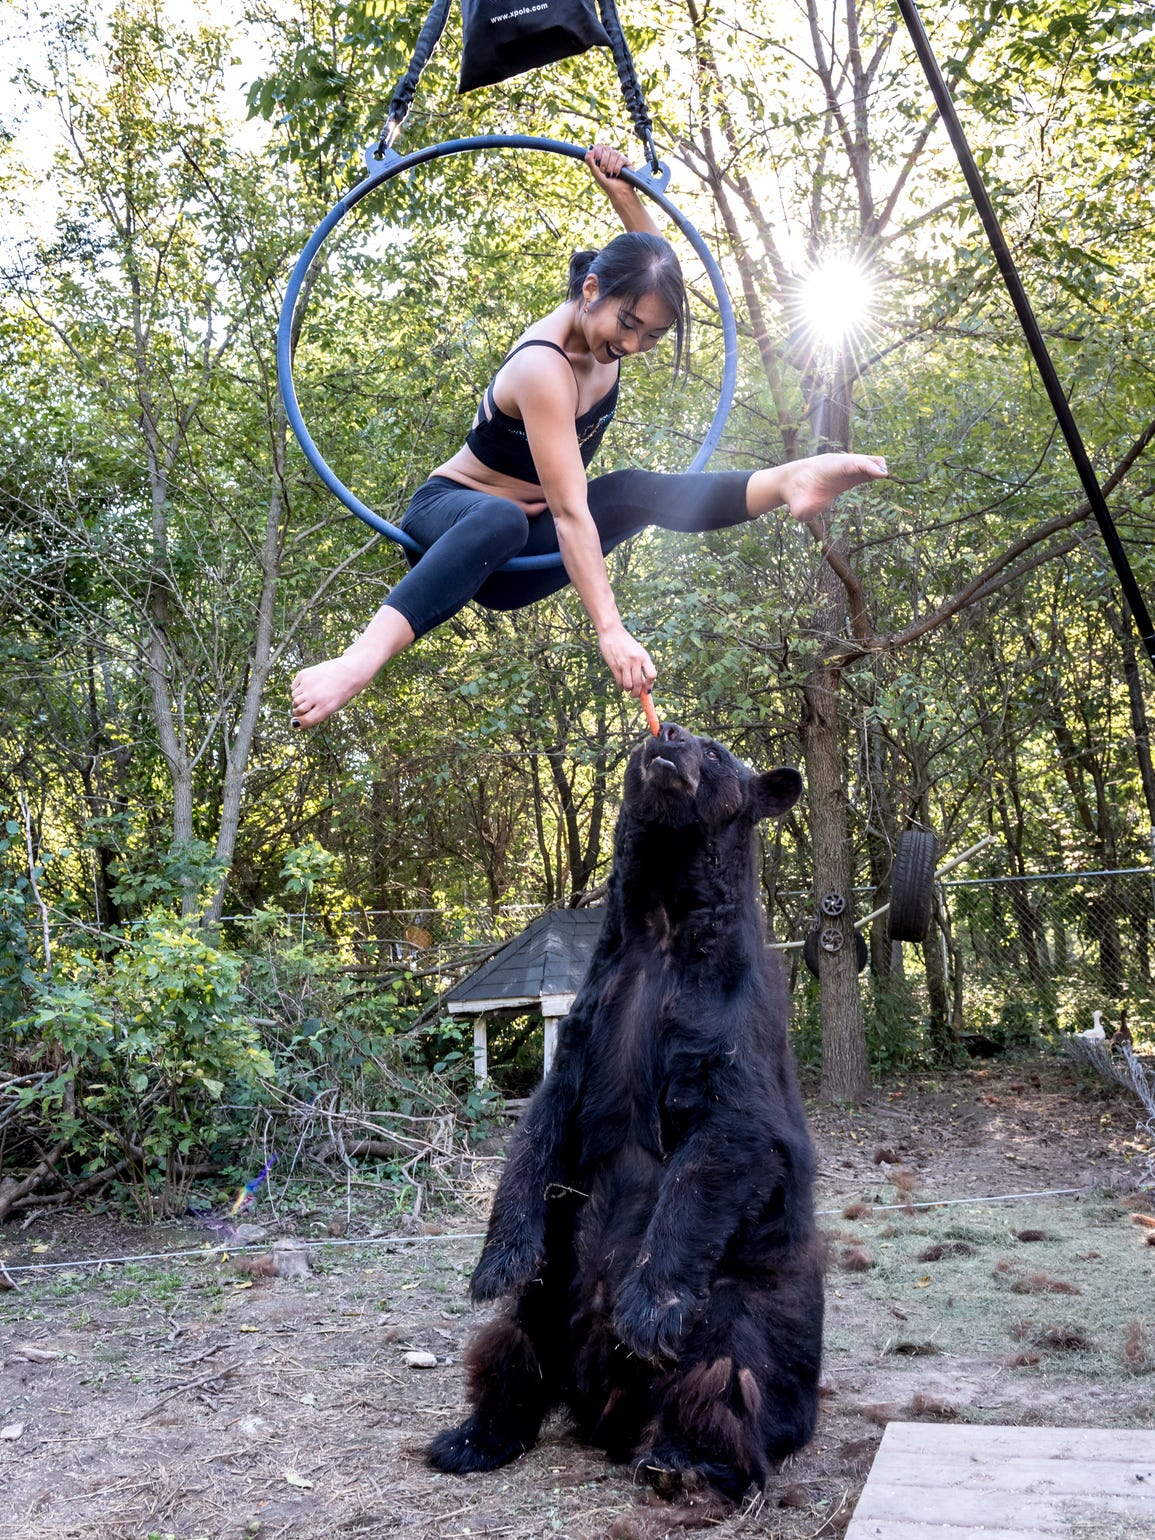 Joy Fisher hangs from a lyra as she feeds a bear.